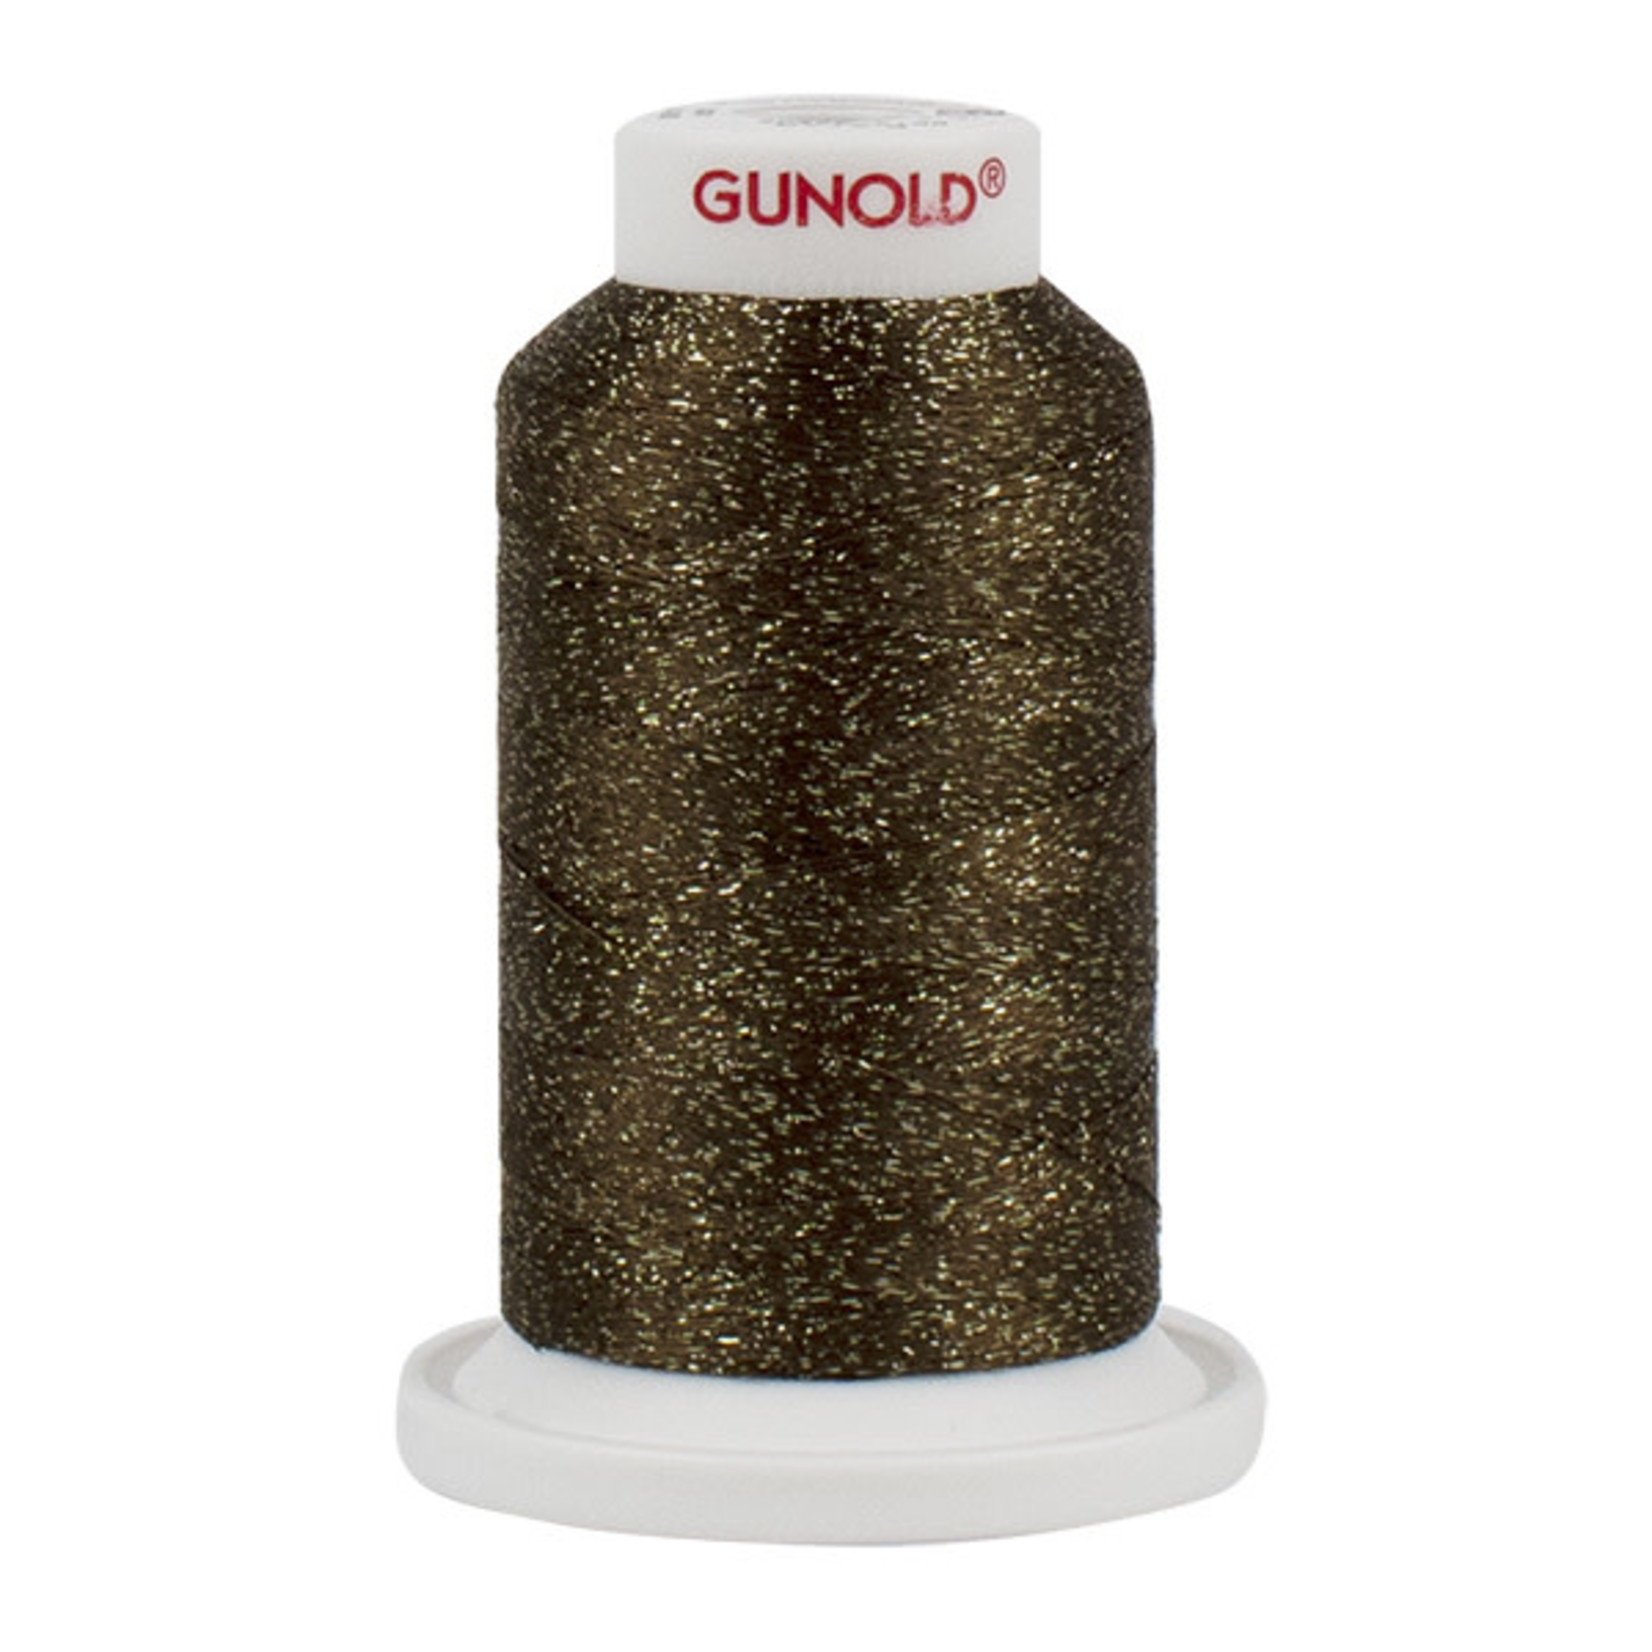 Gunold Poly Sparkle™ (Star™) Mini-King Cone 1,100 YD, 30 Wt, Camo Brown with Tone On Tone Sparkle 50909